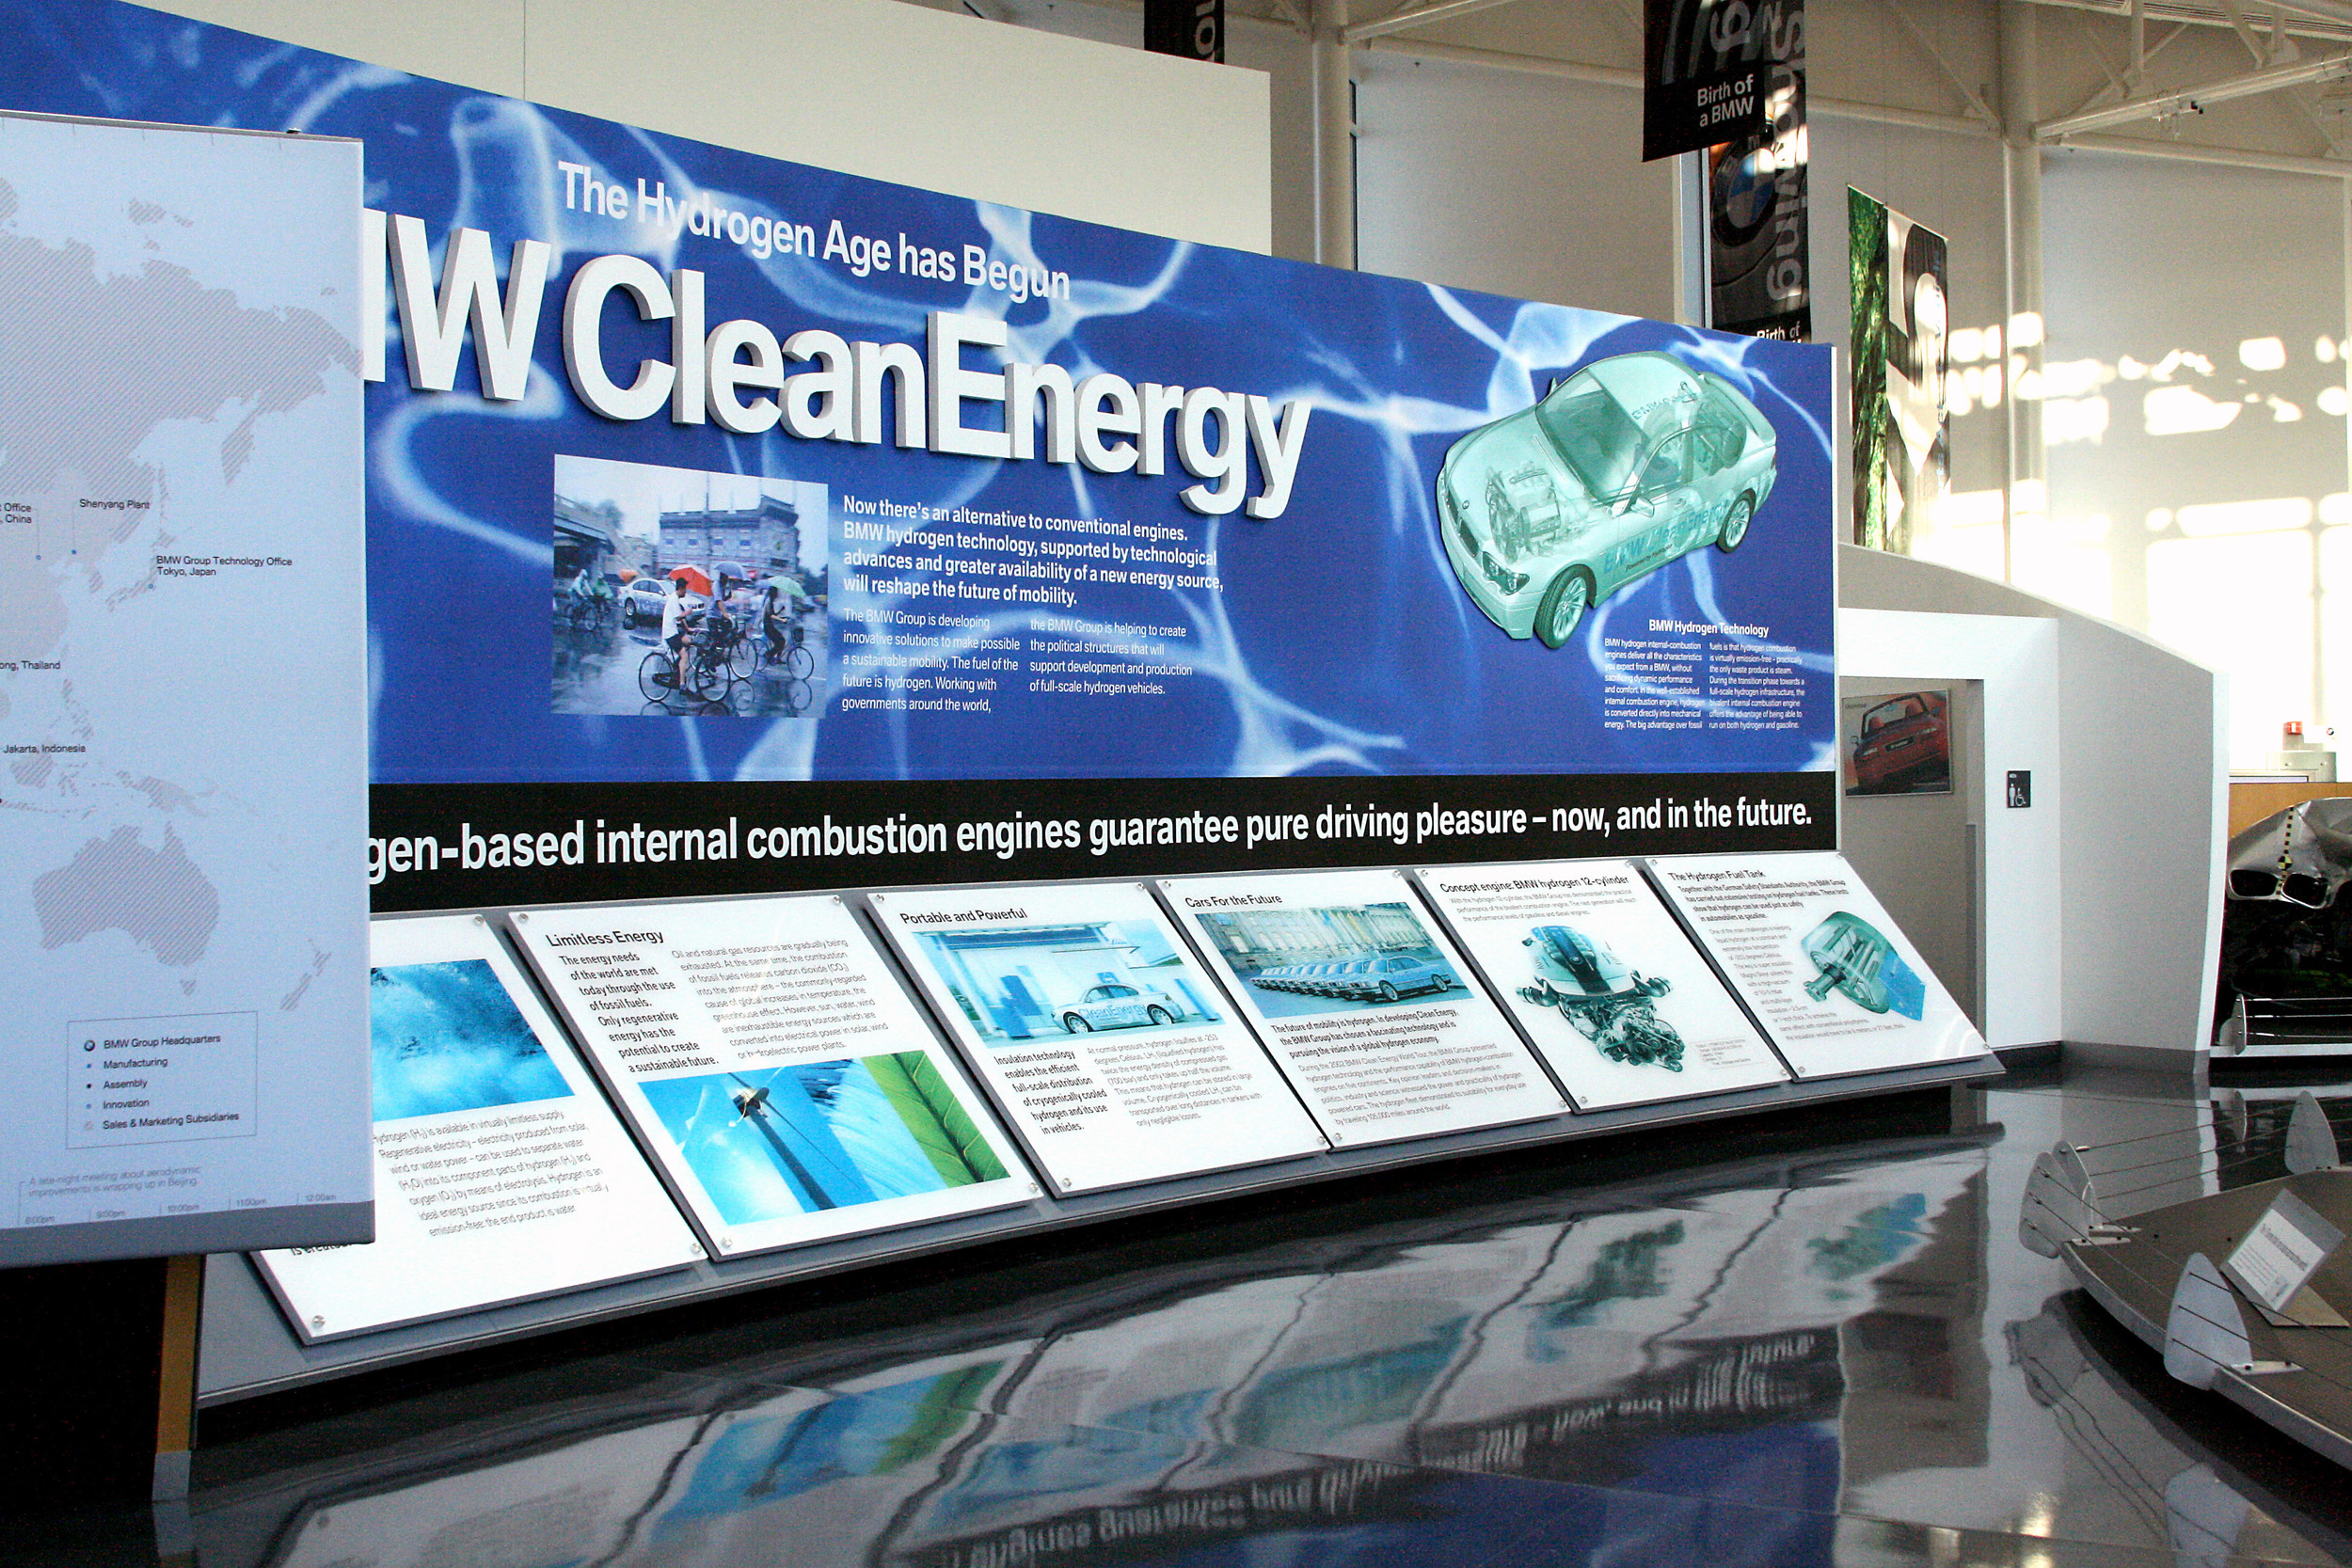 Clean Energy Display at the BMW Zentrum Visitors Center